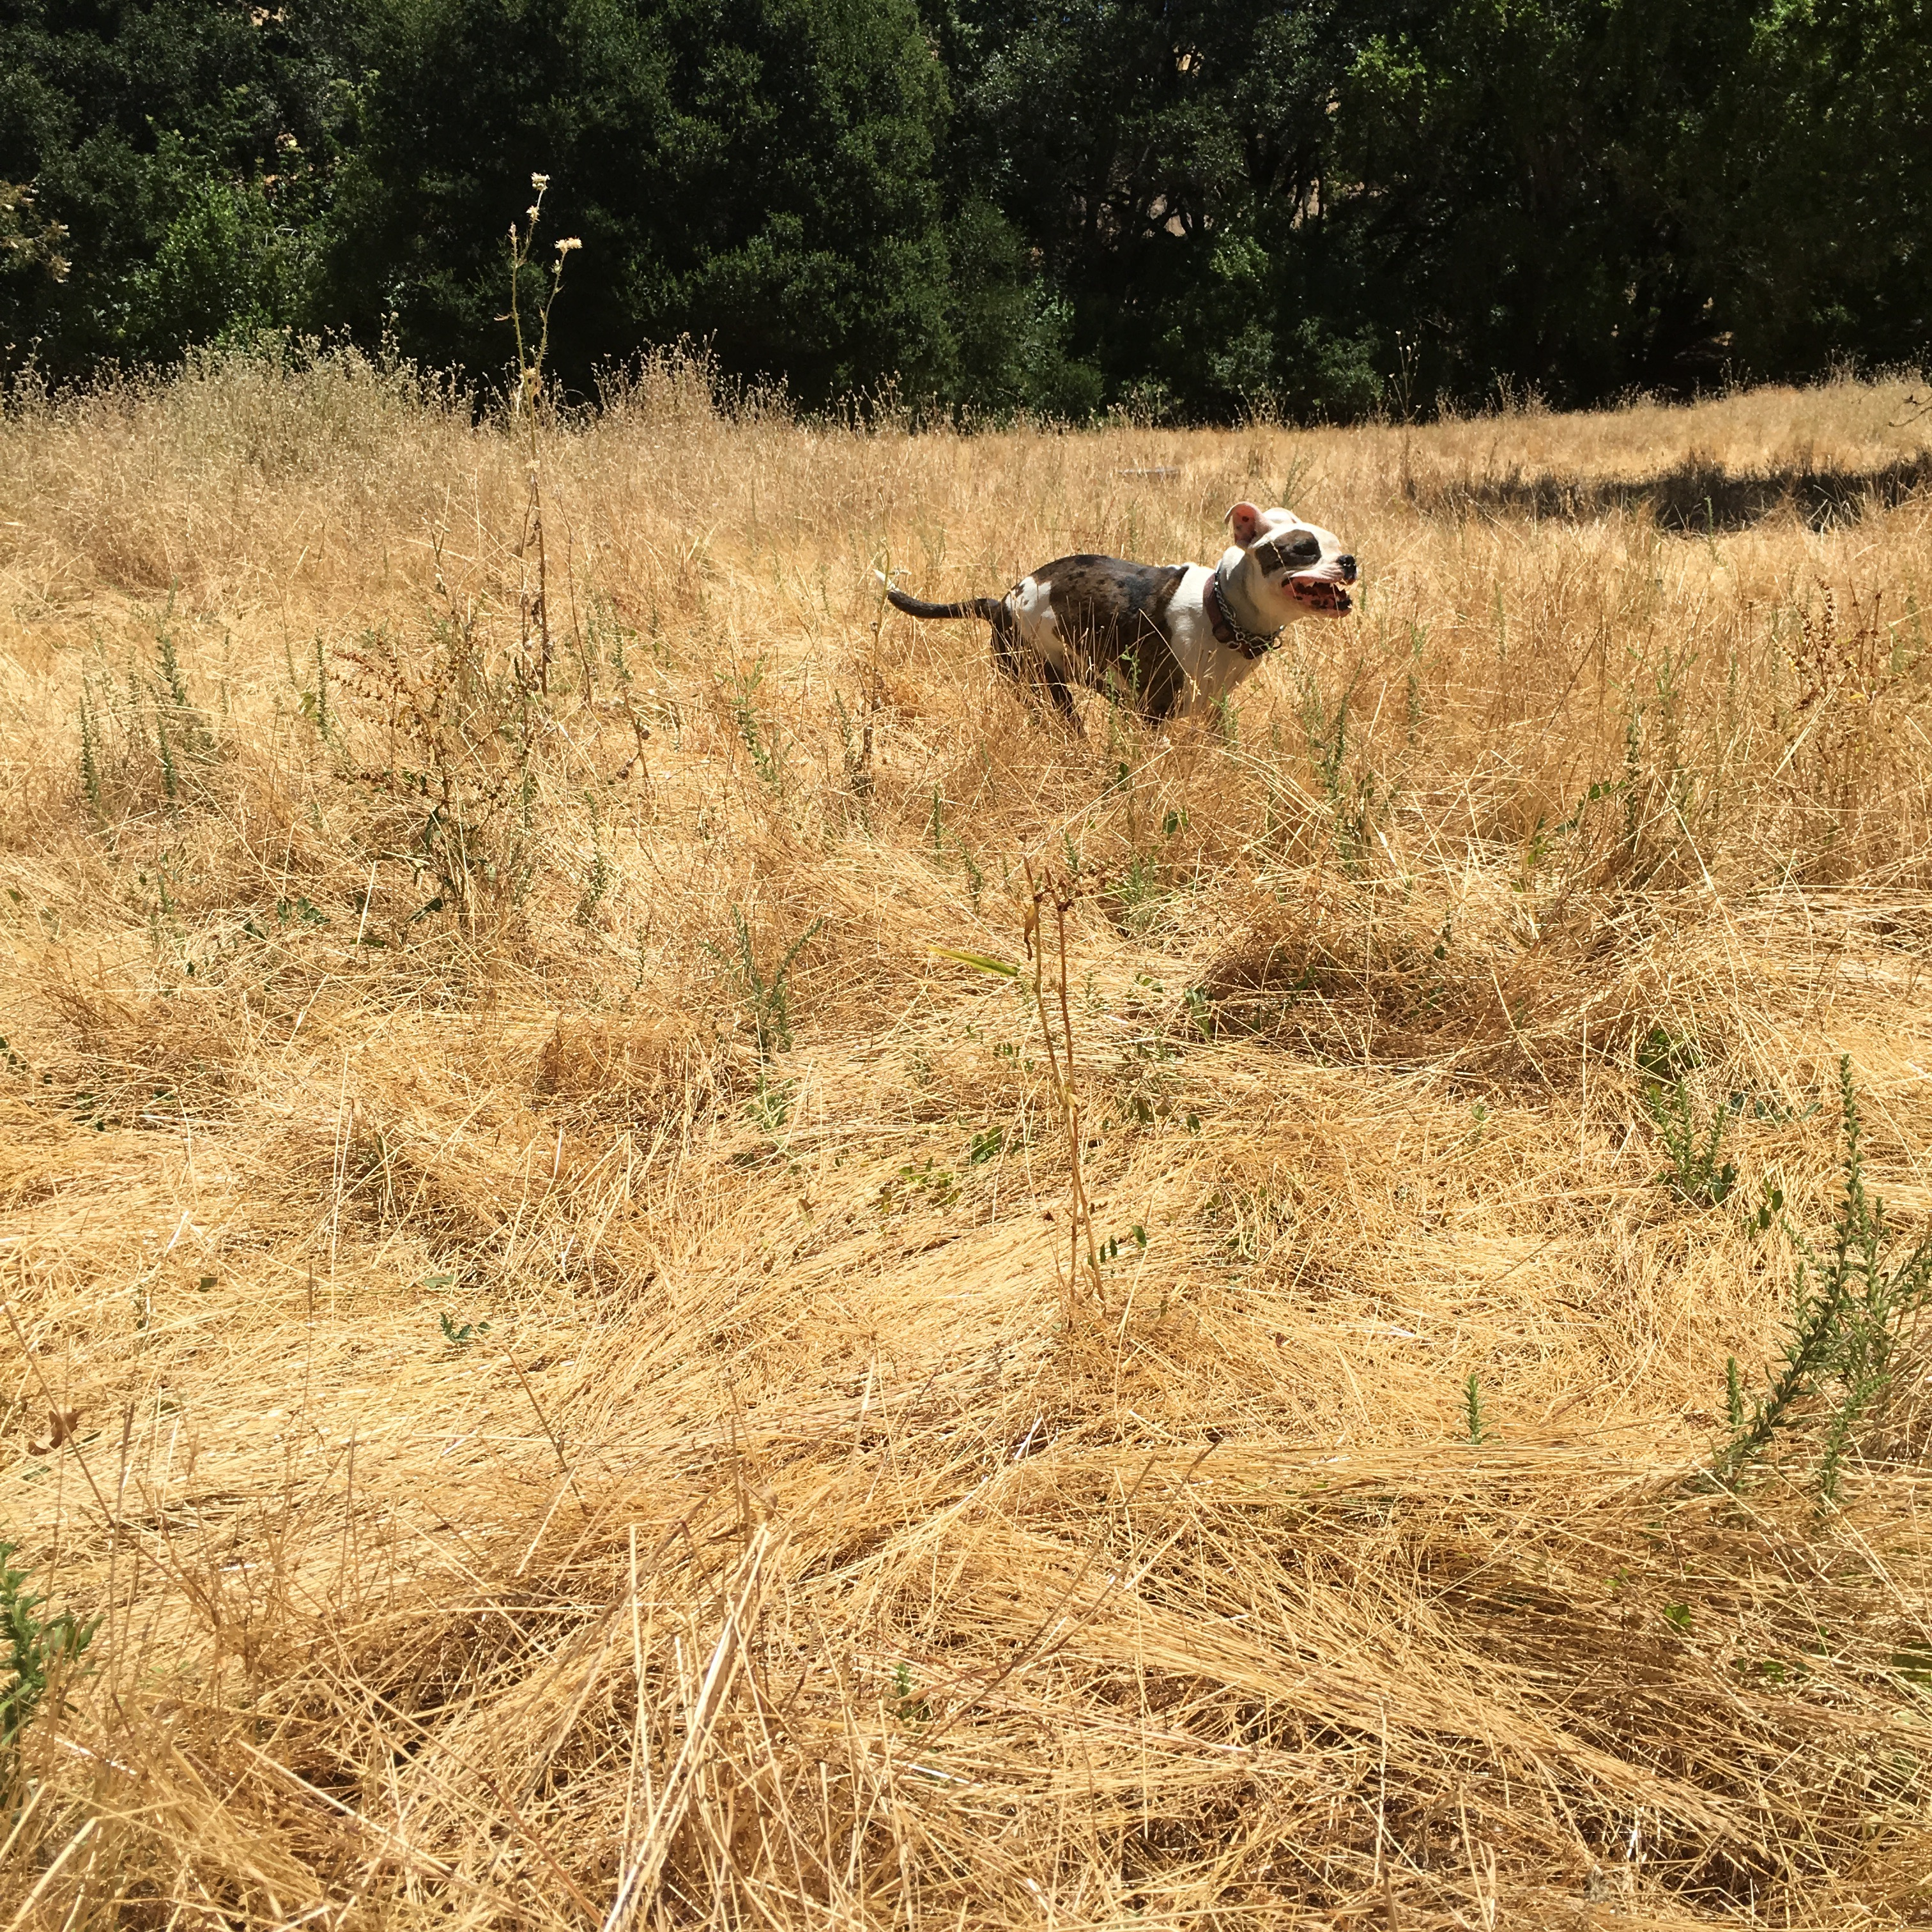 Lilah in the Golden Fields